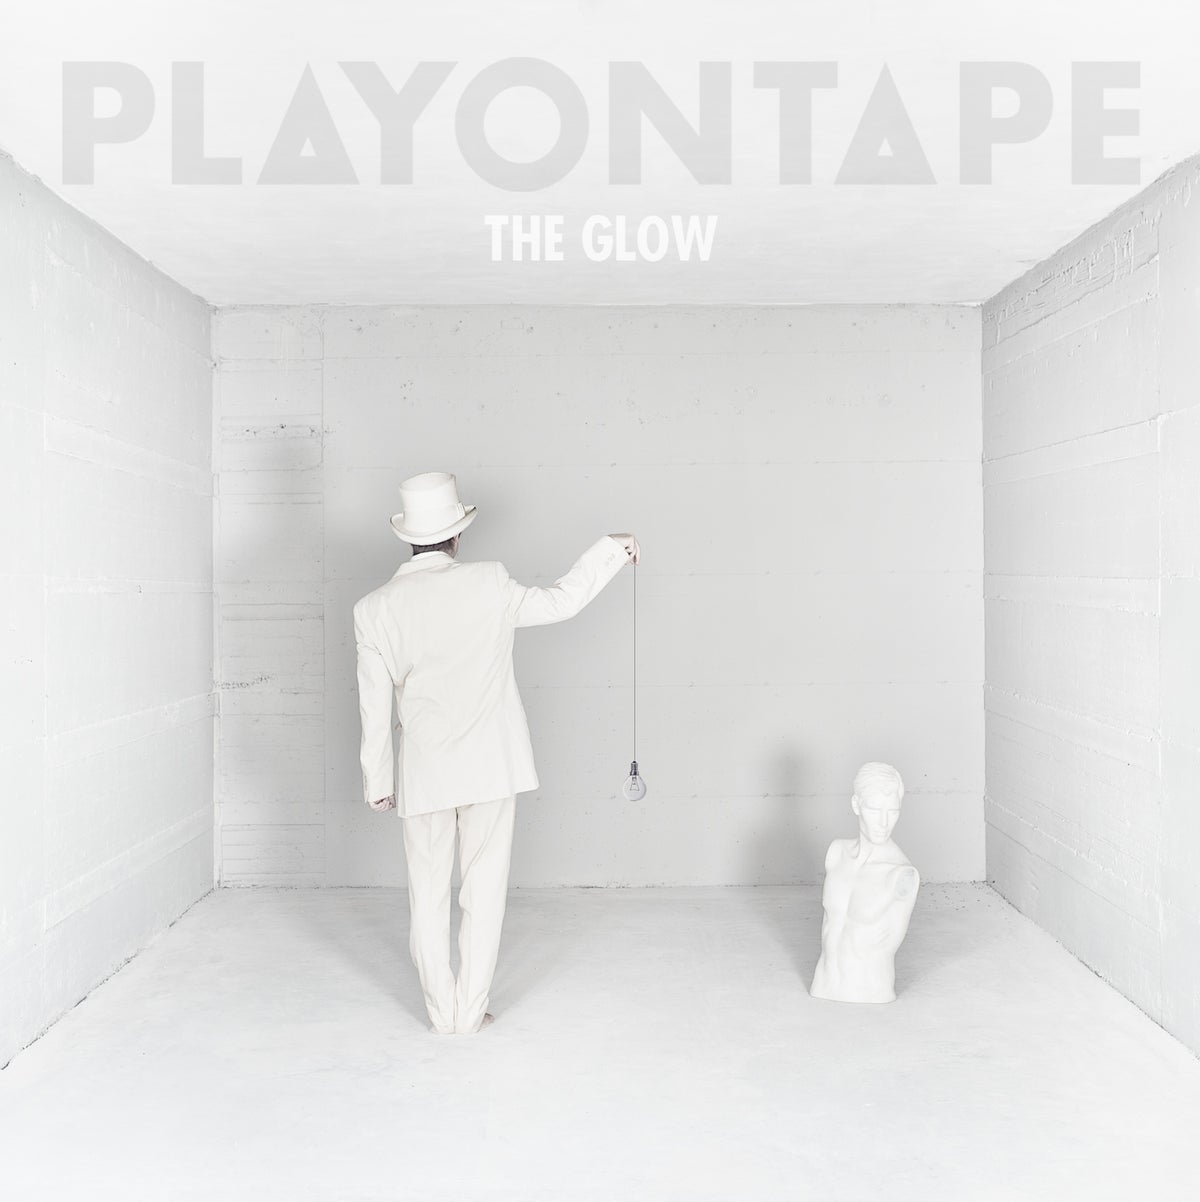 Image of PLAYONTAPE - The Glow